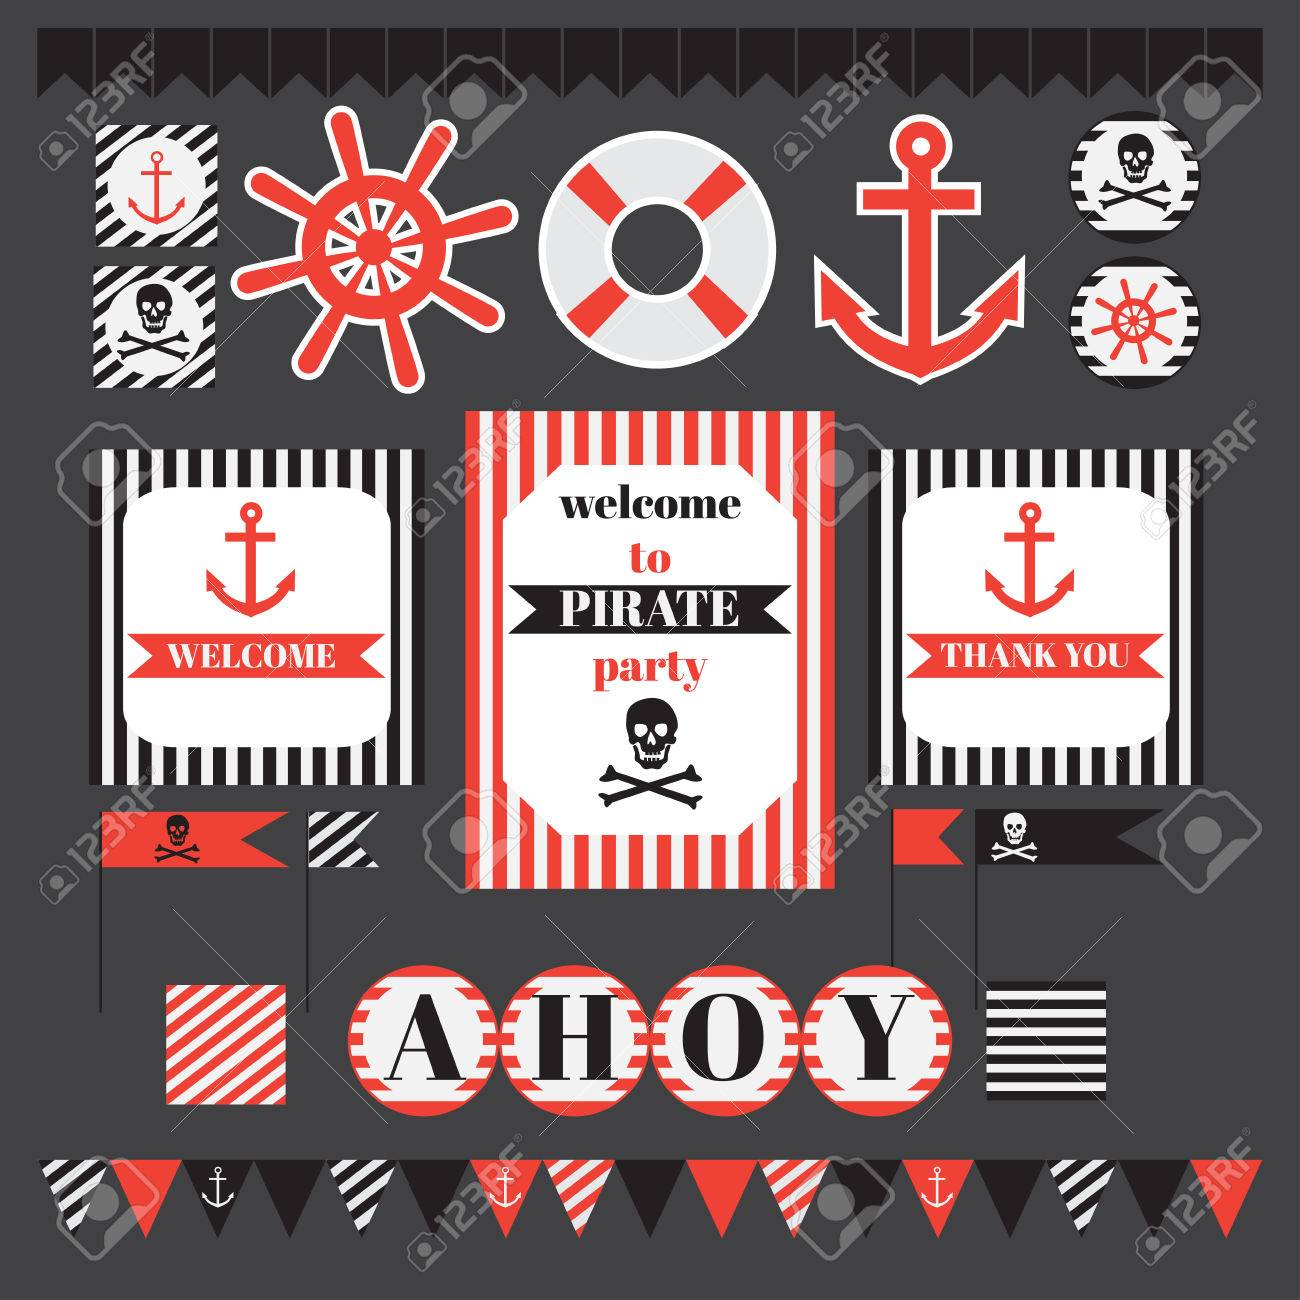 graphic relating to Pirate Party Printable named Printable fixed of traditional pirate celebration materials. Templates, labels,..